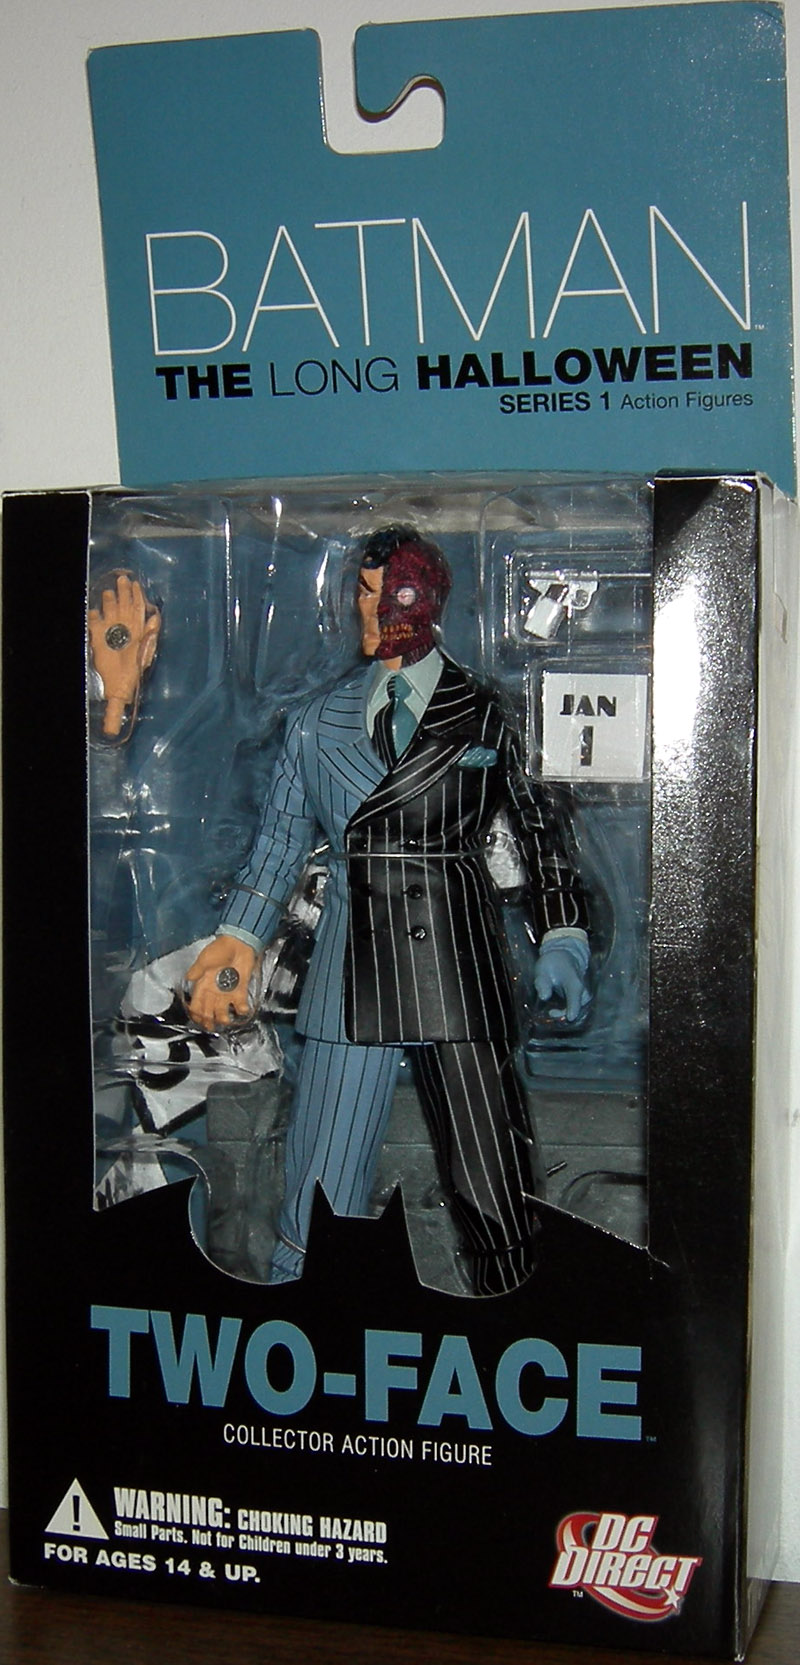 Two-Face Batman Long Halloween Series 1 Collector Action Figure